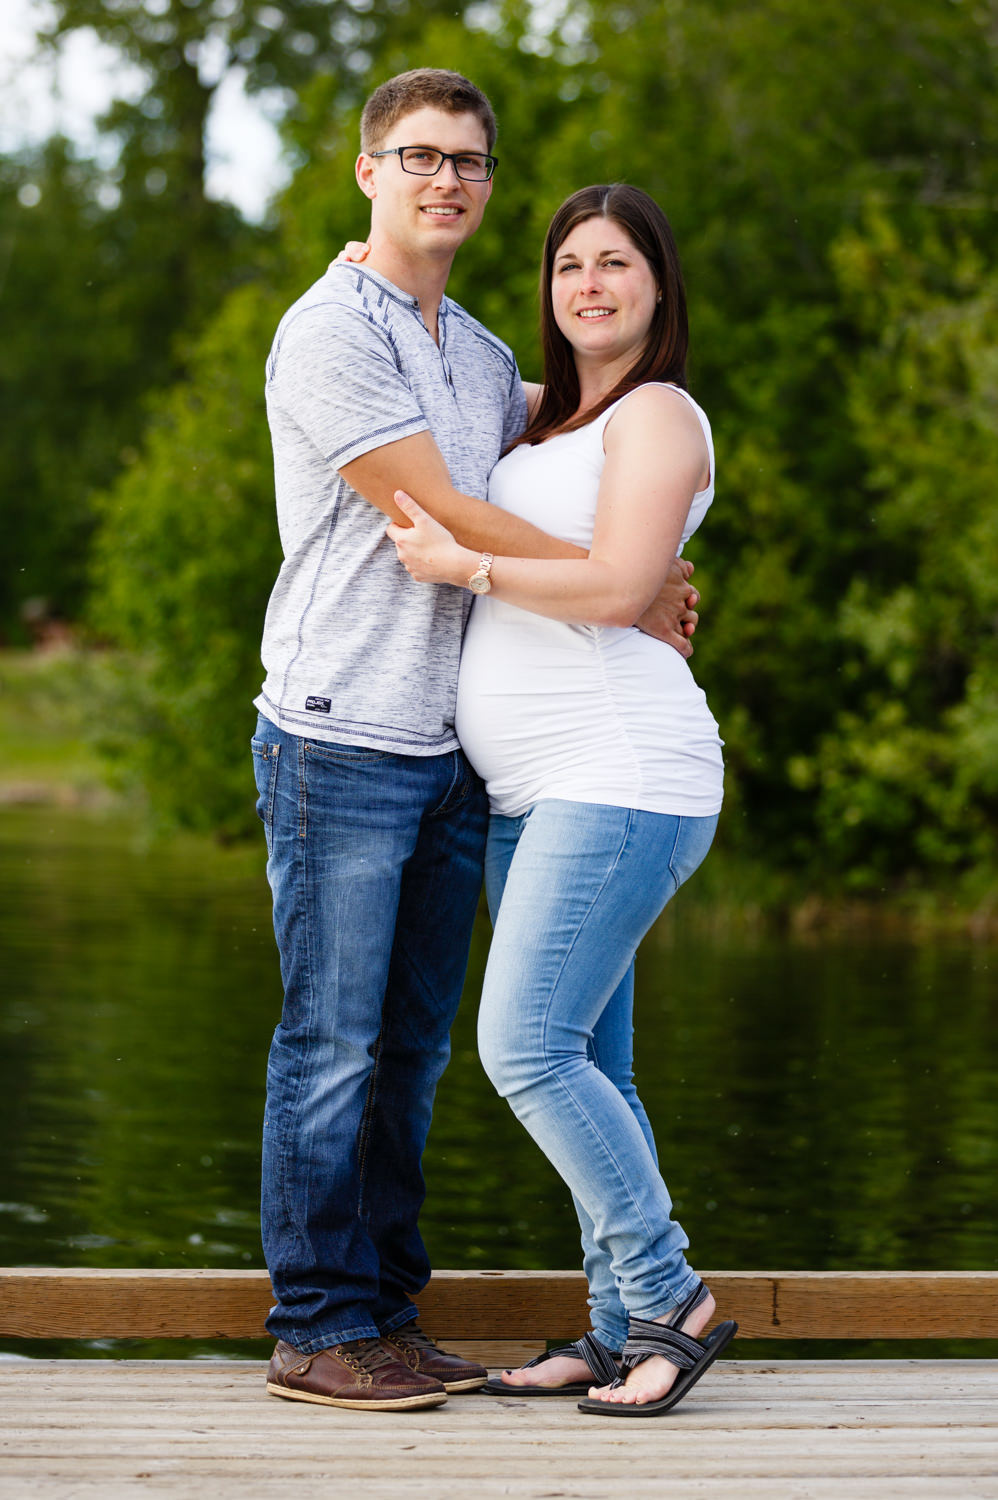 quesnel-bc-ten-mile-lake-maternity-session-quesnel-maternity-photographer-kelowna-maternity-photographers-okanagan-meternity-photographer (27 of 32).jpg